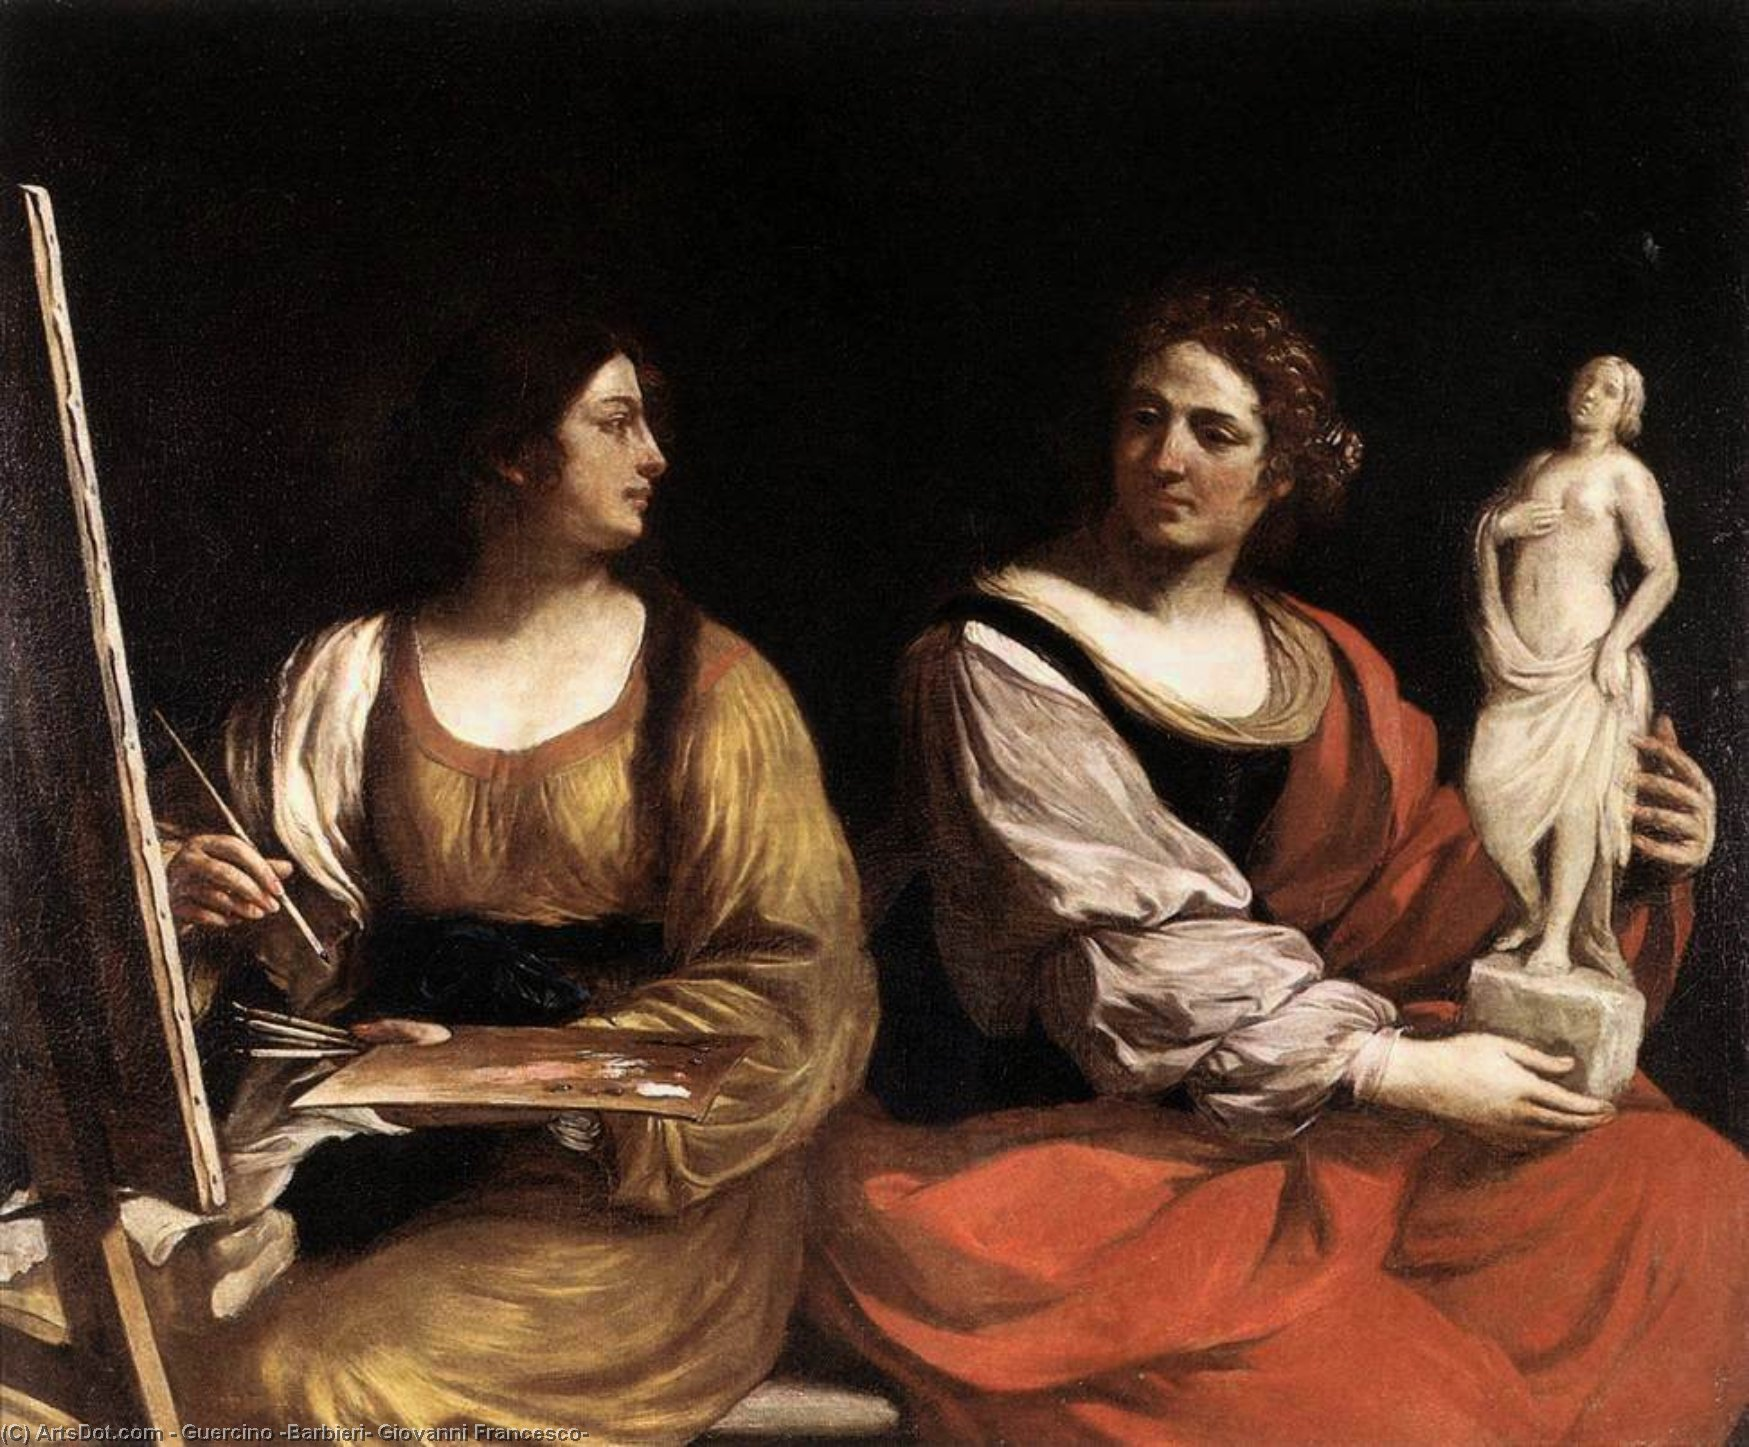 Allegory of Painting and Sculpture, Oil by Guercino (Barbieri, Giovanni Francesco) (1591-1666, Italy)